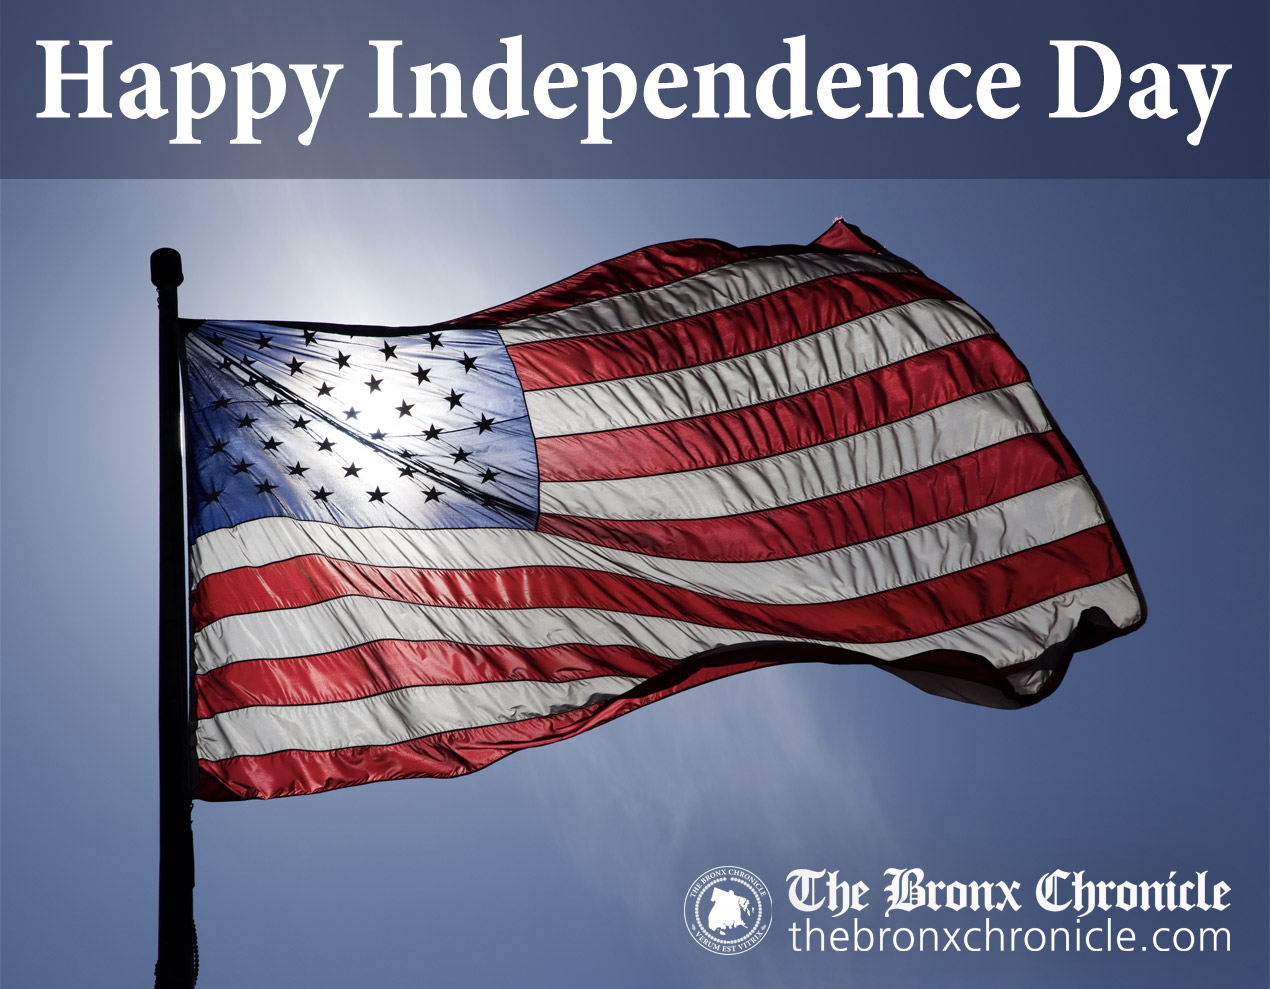 Happy Independence Day to all The Bronx Chronicle Readers!